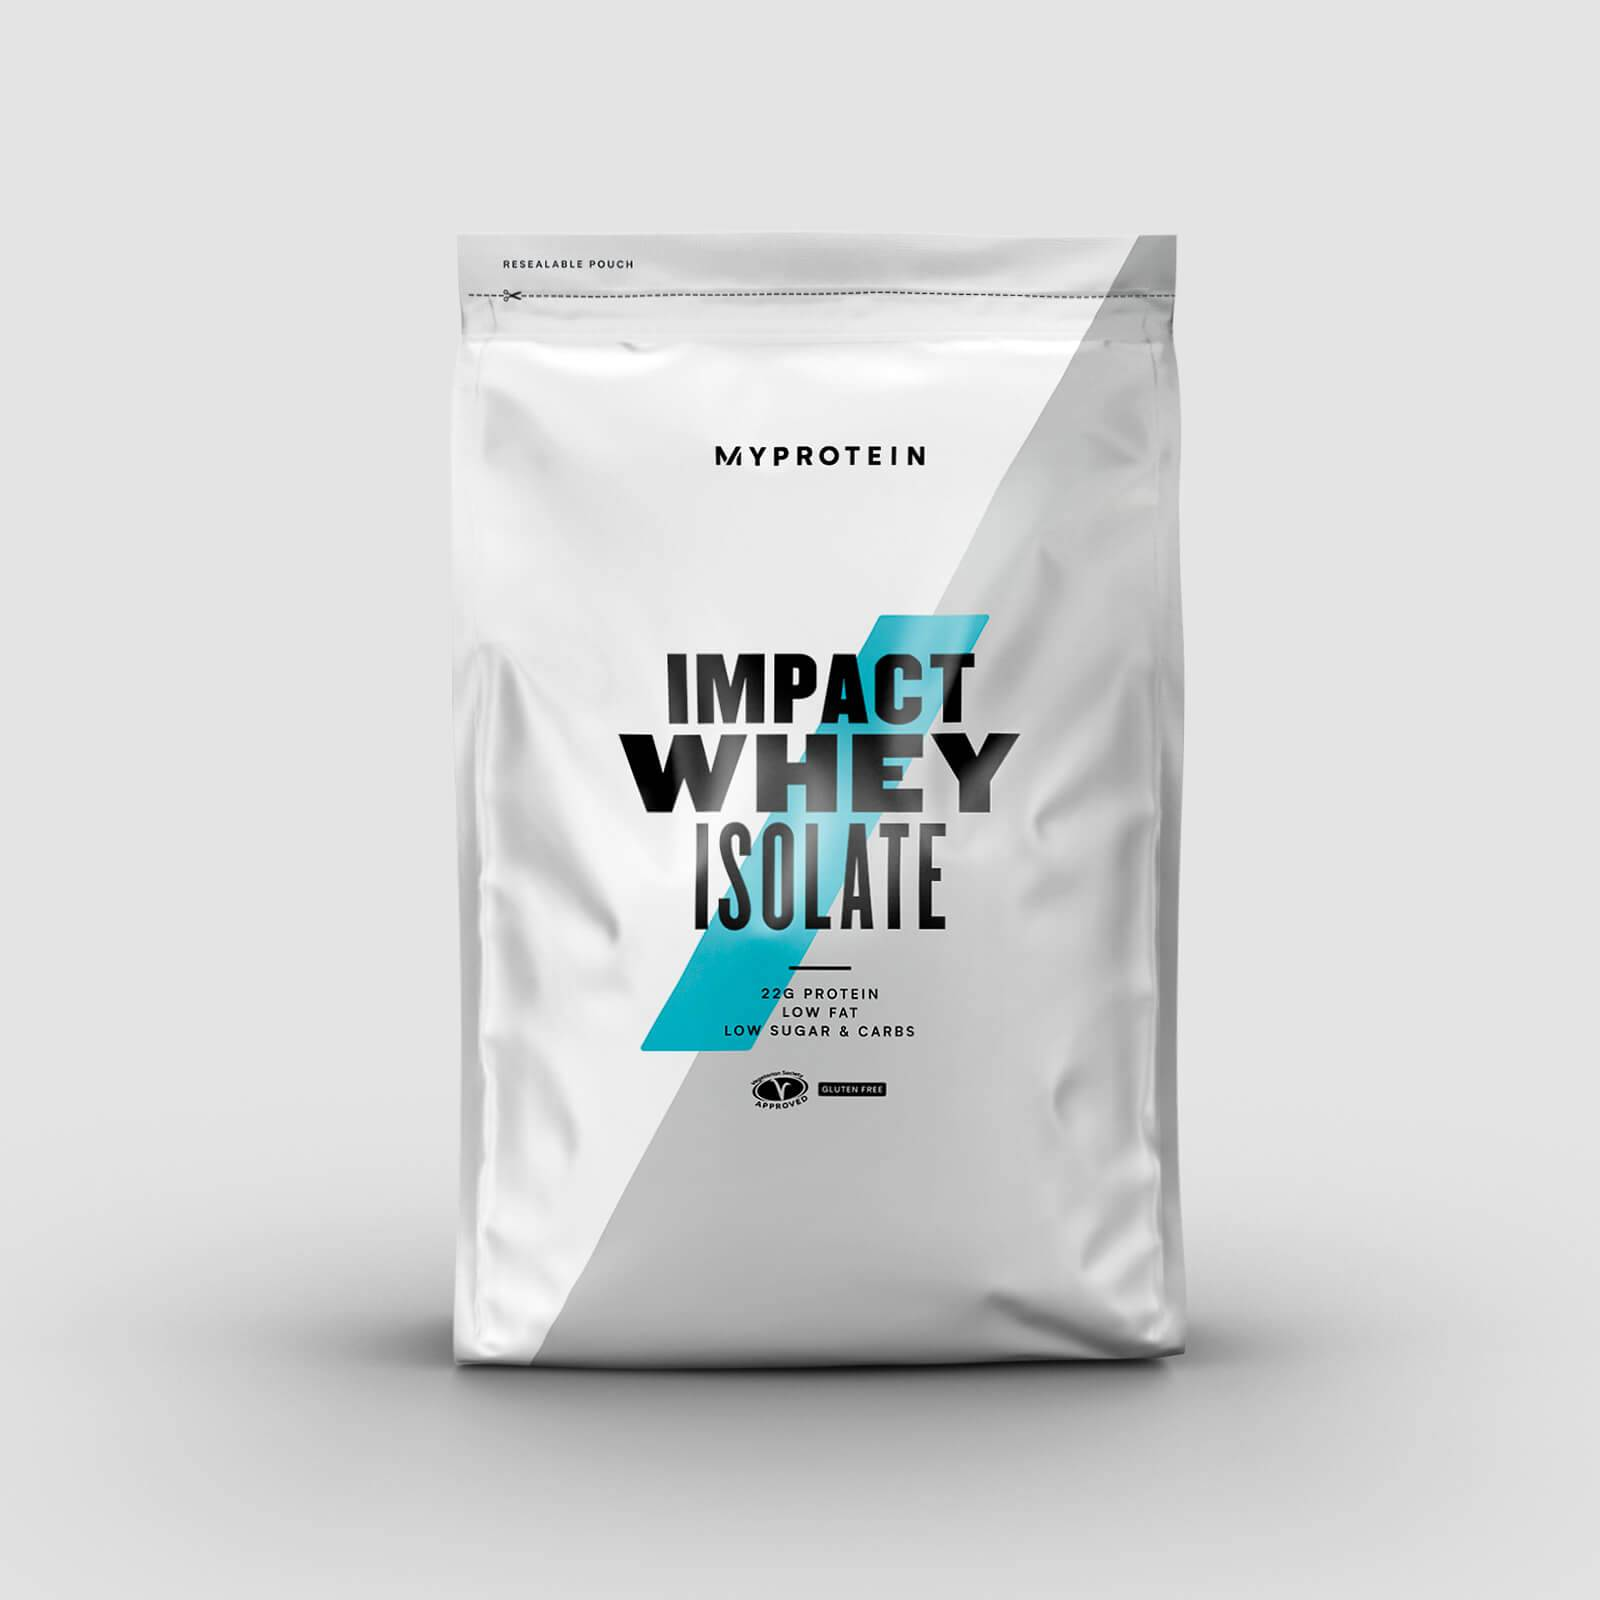 Myprotein Impact Whey Isolate - 2.5kg - Brownie Rocky Road